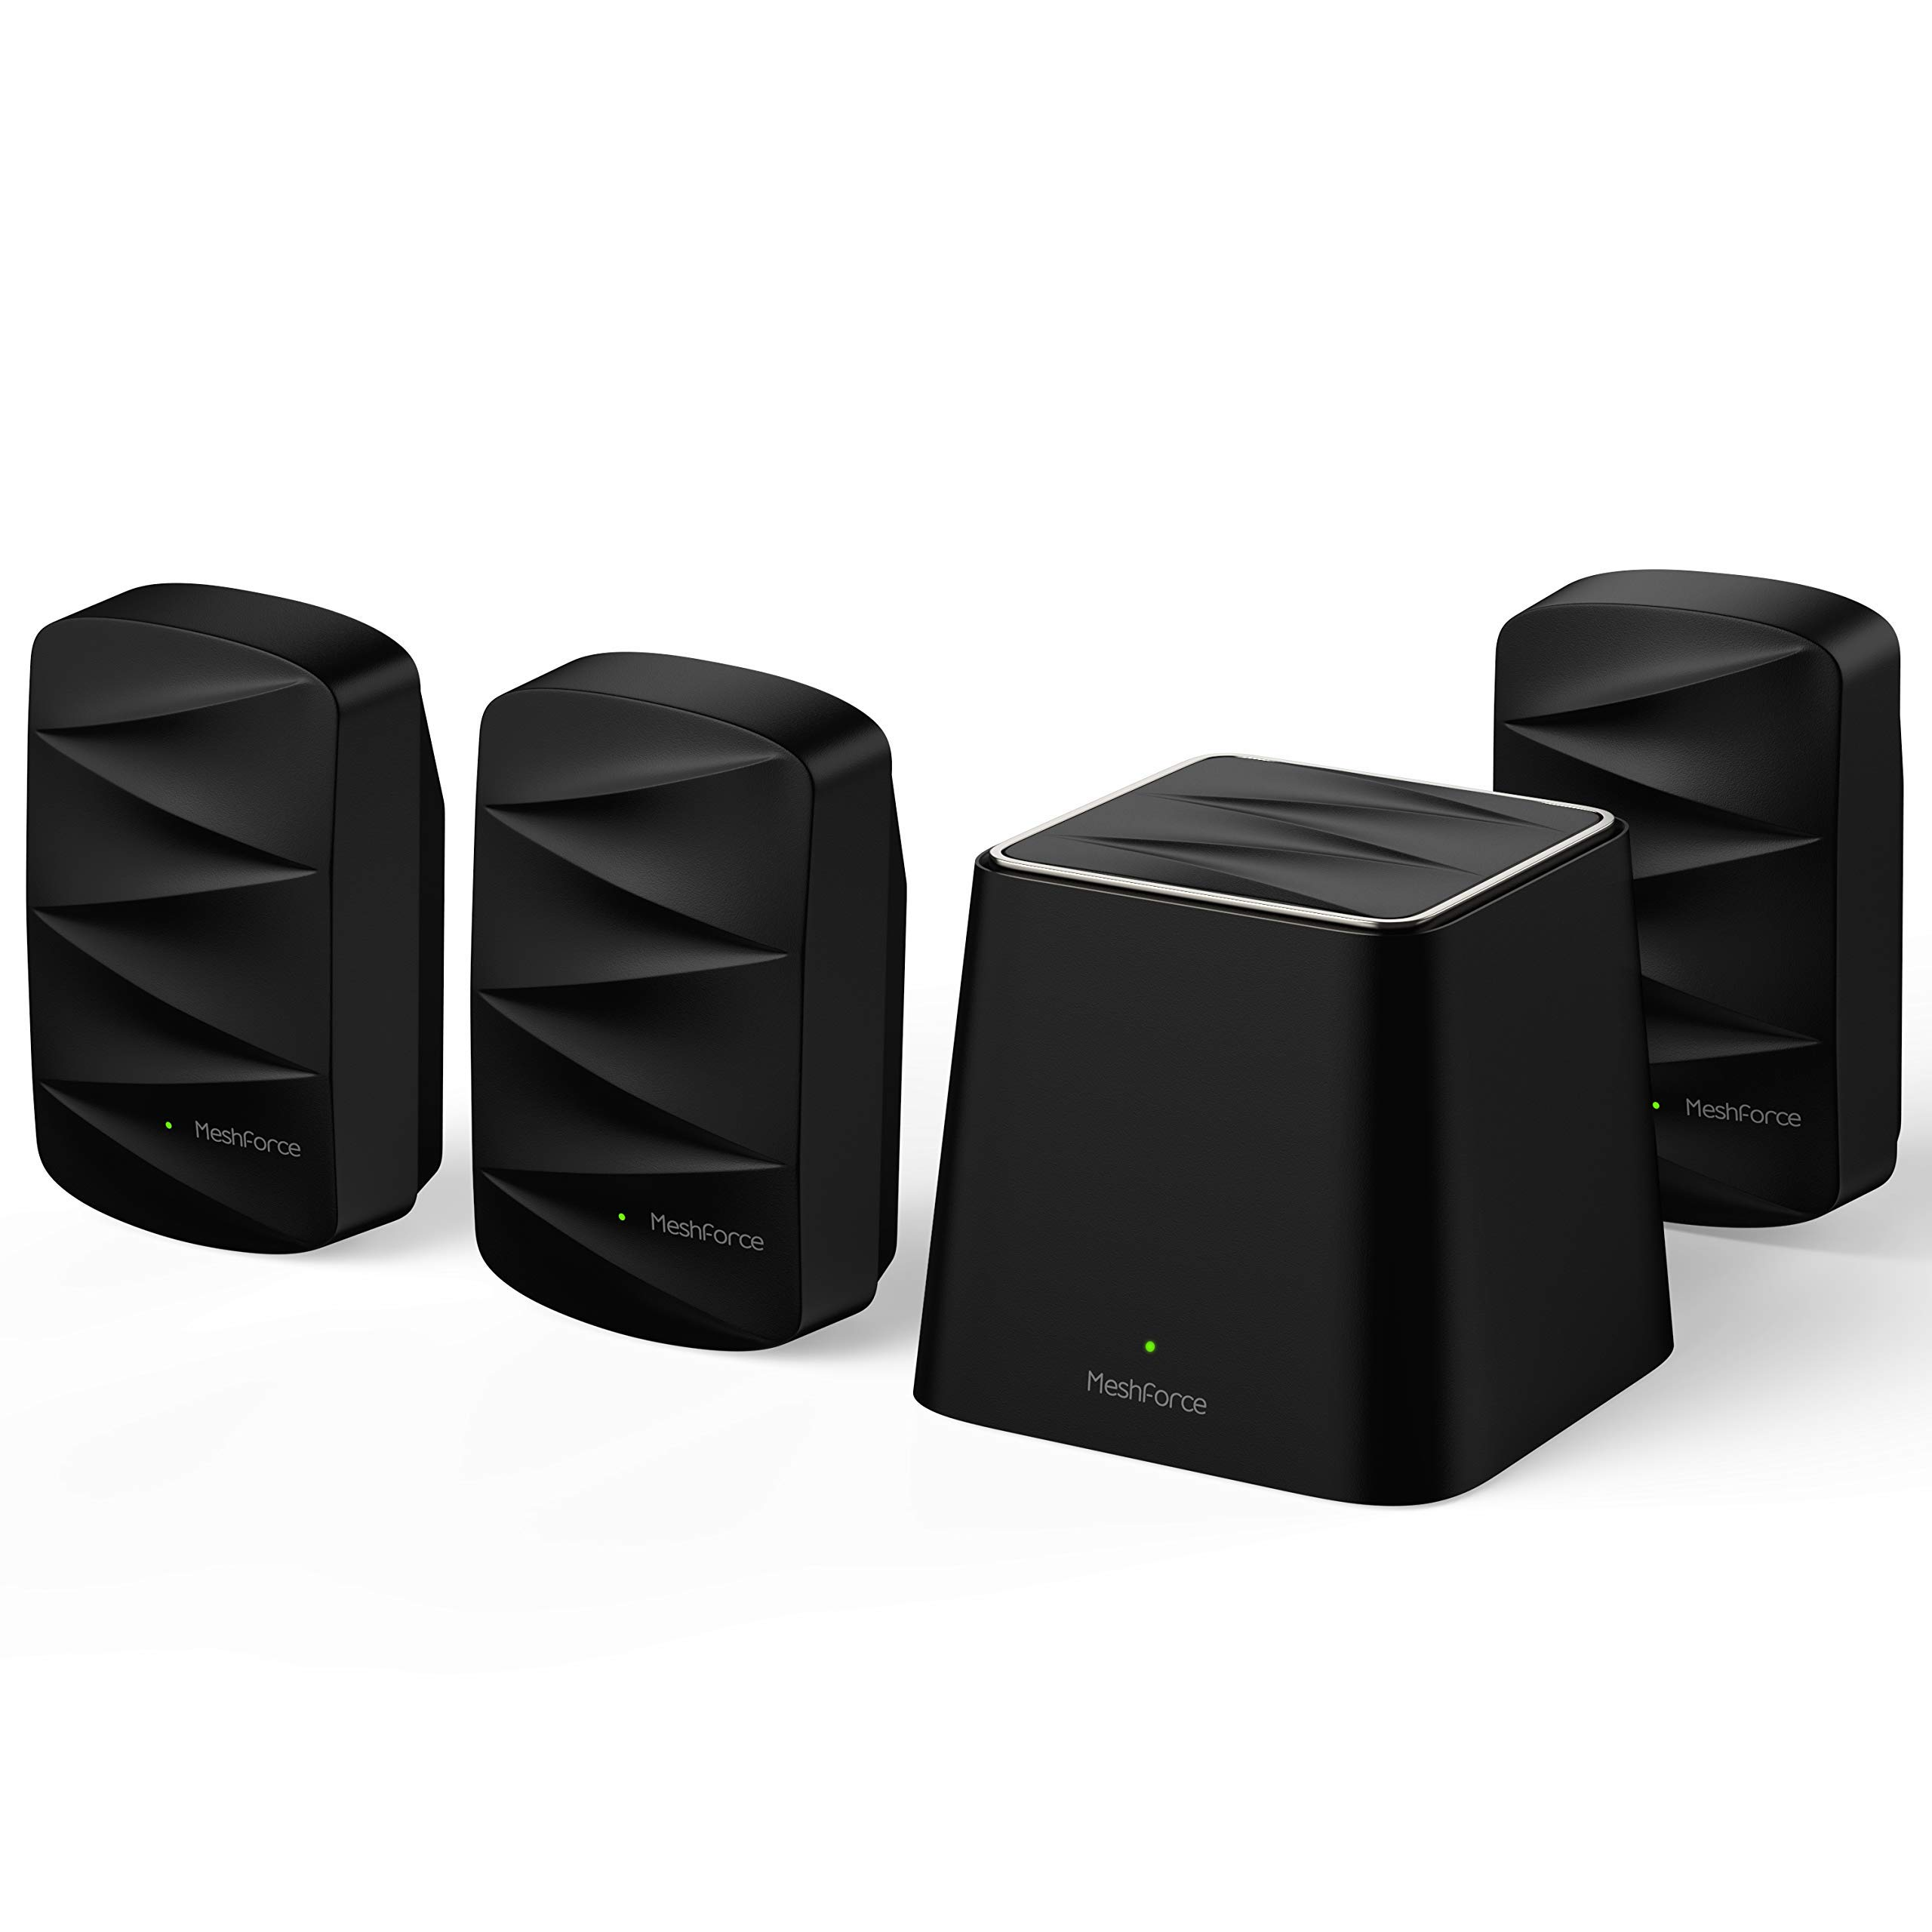 Meshforce M3 Mesh WiFi System (1 WiFi Point + 3 WiFi Dots) - Mesh WiFi Router Replacement with Flexible Wall Plug Extender - Covers Up to 7+ Rooms (Midnight Black)